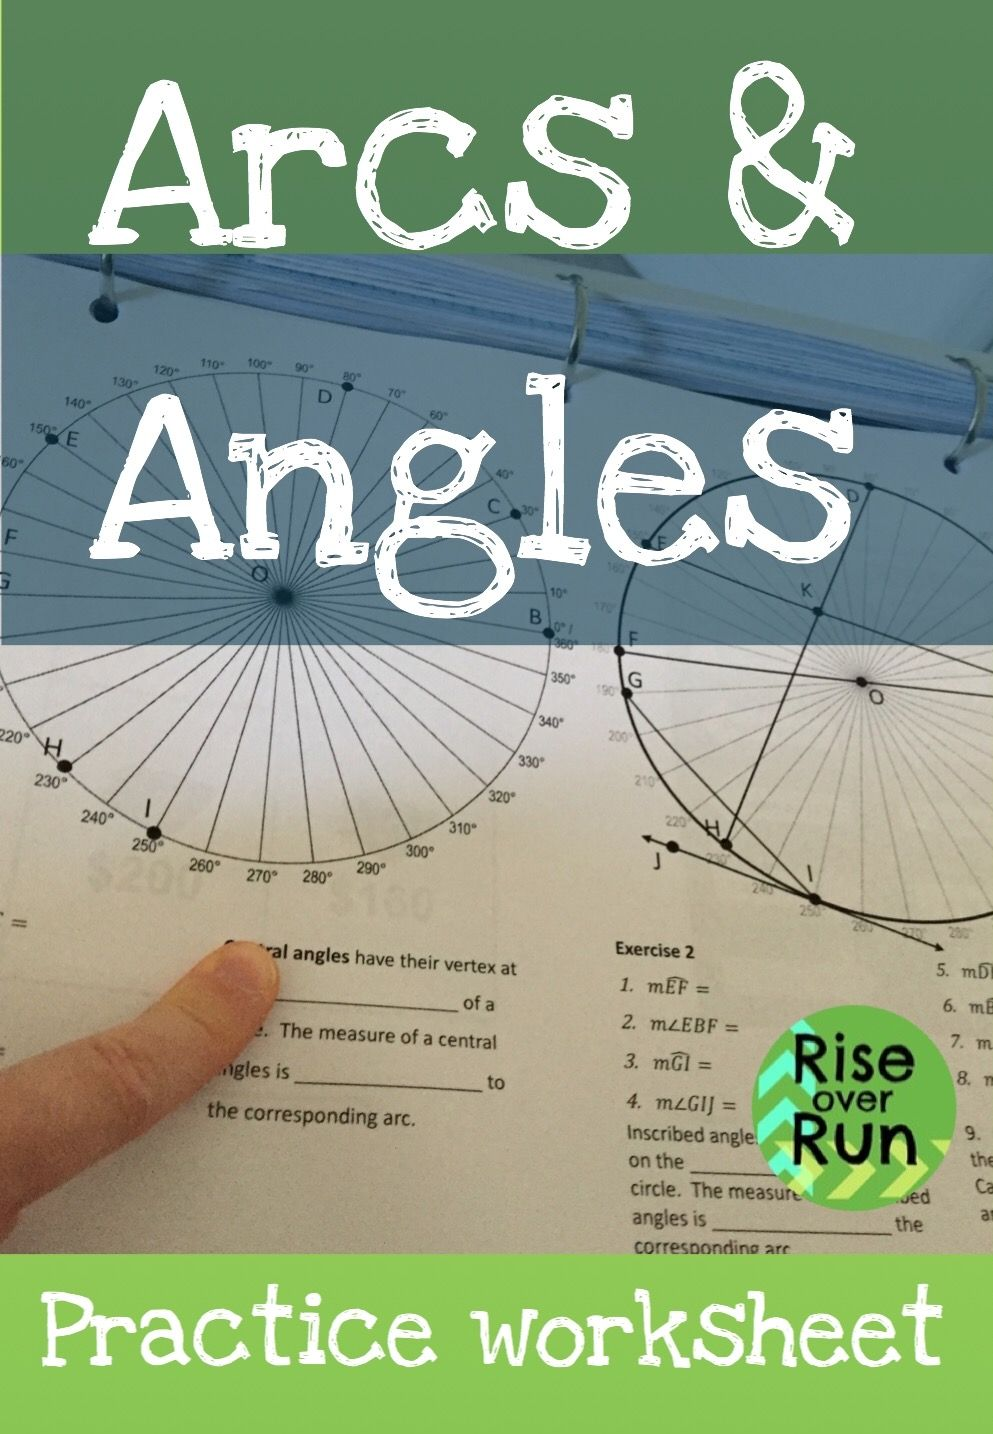 Arcs and Angles in Circles Worksheet | Pinterest | Worksheets, Maths ...